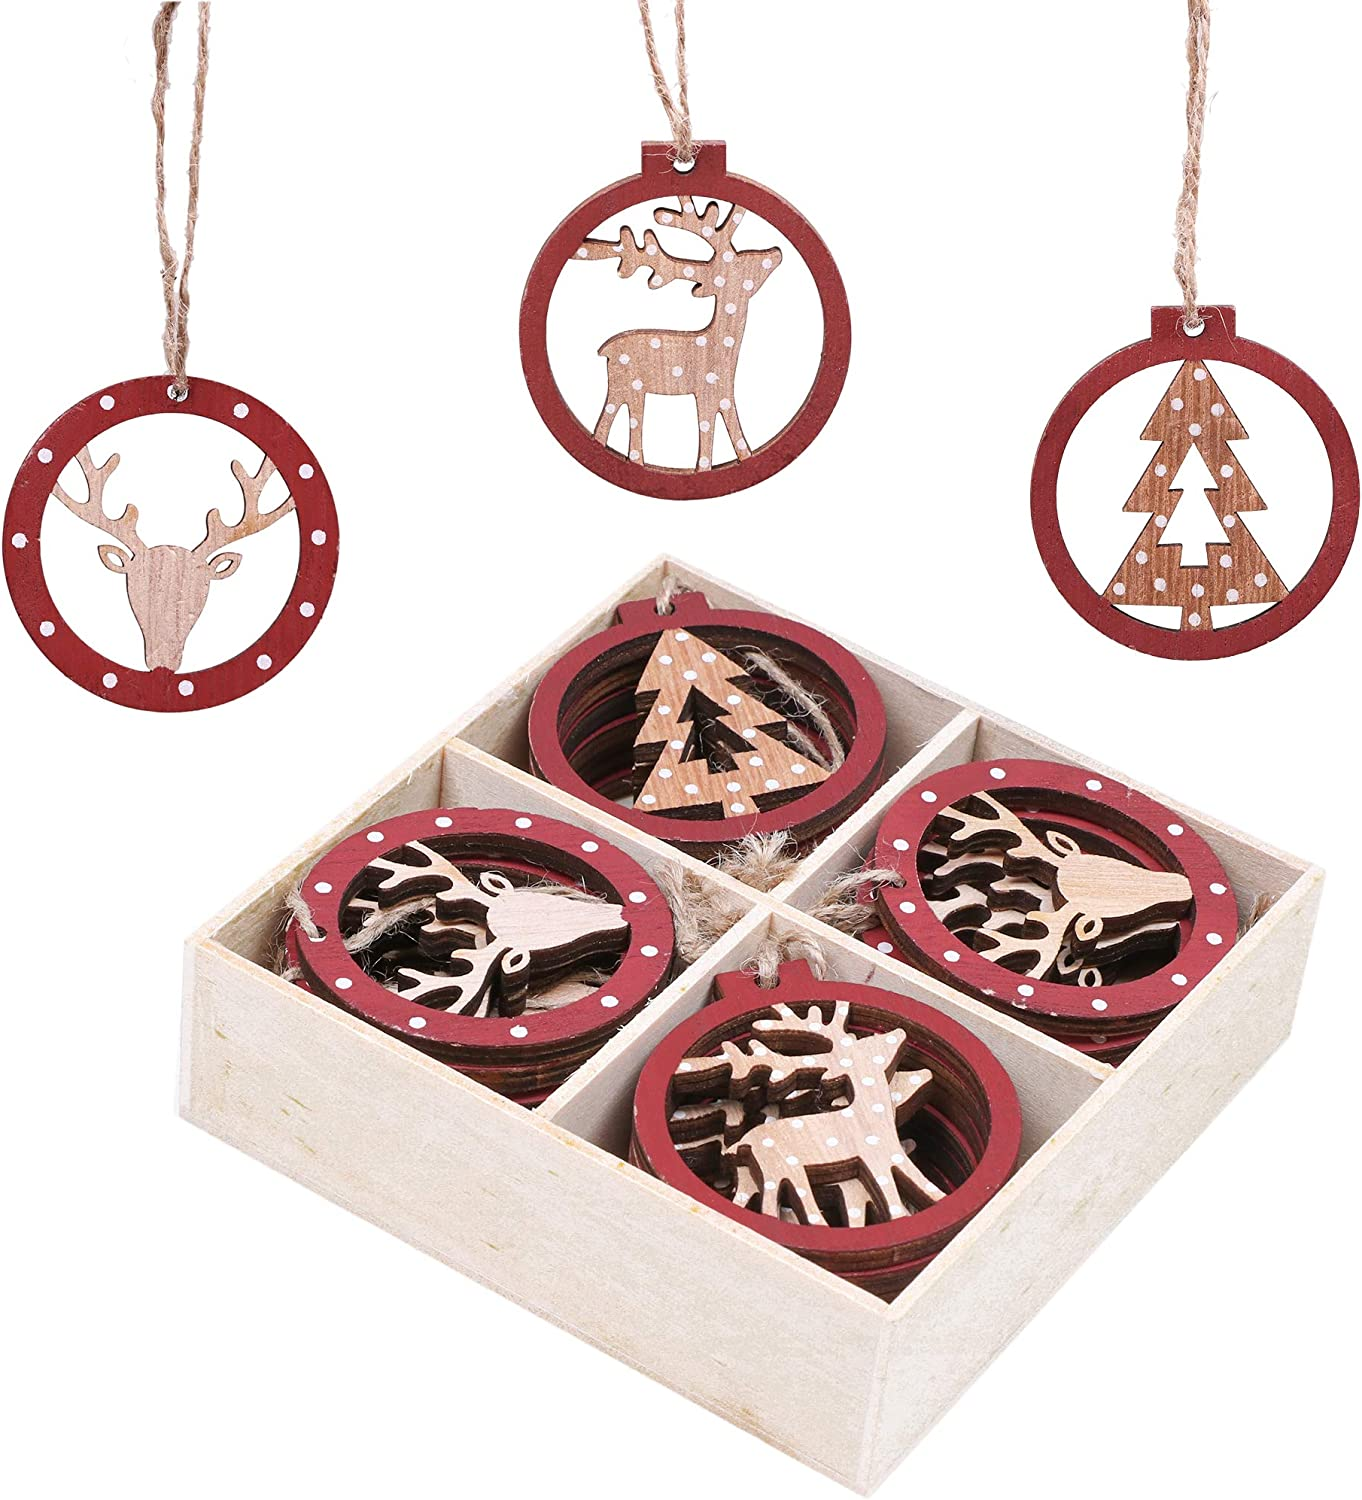 Woodland 24pcs 2.3Inch//5.8cm Red and Beige Xmas Tree Ornament,Hanging Fox Shaped Pendants Valery Madelyn Wooden Christmas Tree Decoration Set